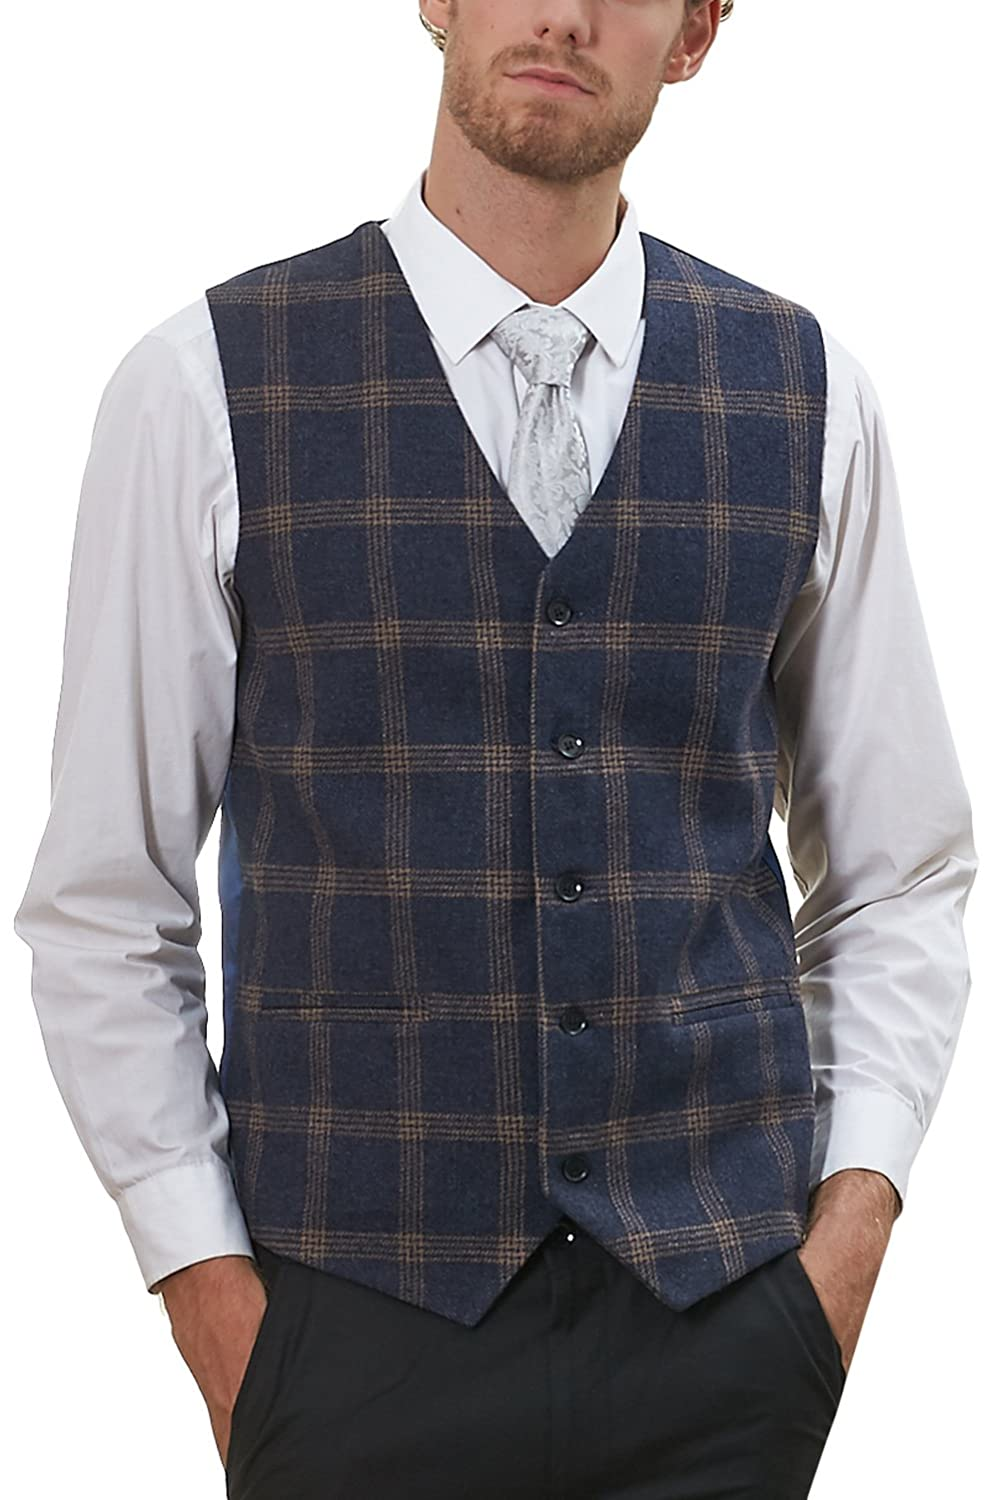 Hanayome Men's Jacket V-Nek Tweed Plaid Slim Fit Business Suit Vest 5 Button Coat VS58-VS-A1